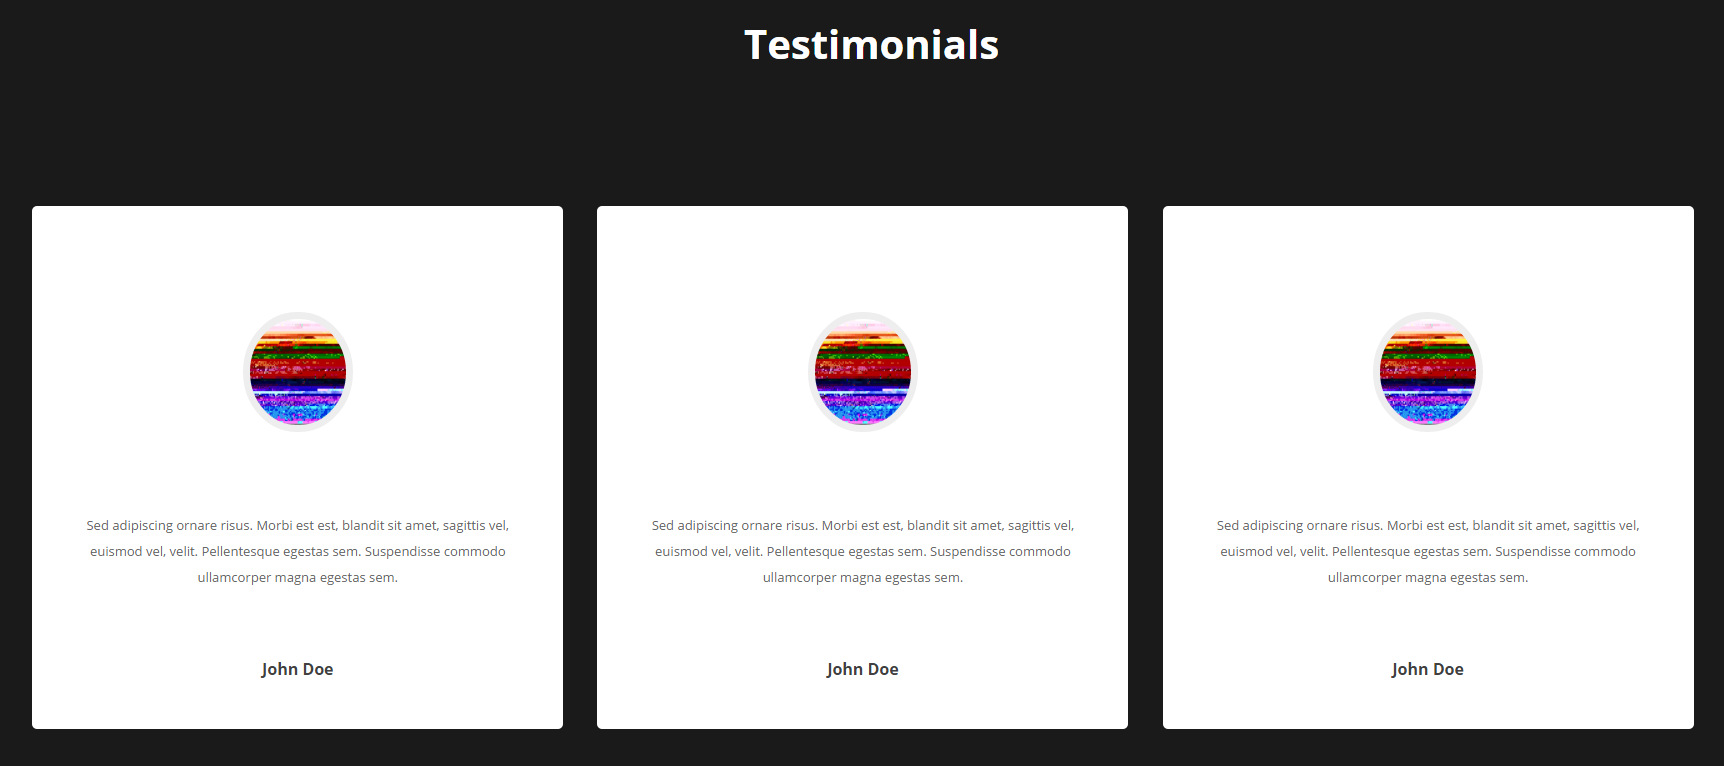 H3 Text, Three Client Image,Testimonials and Client Name